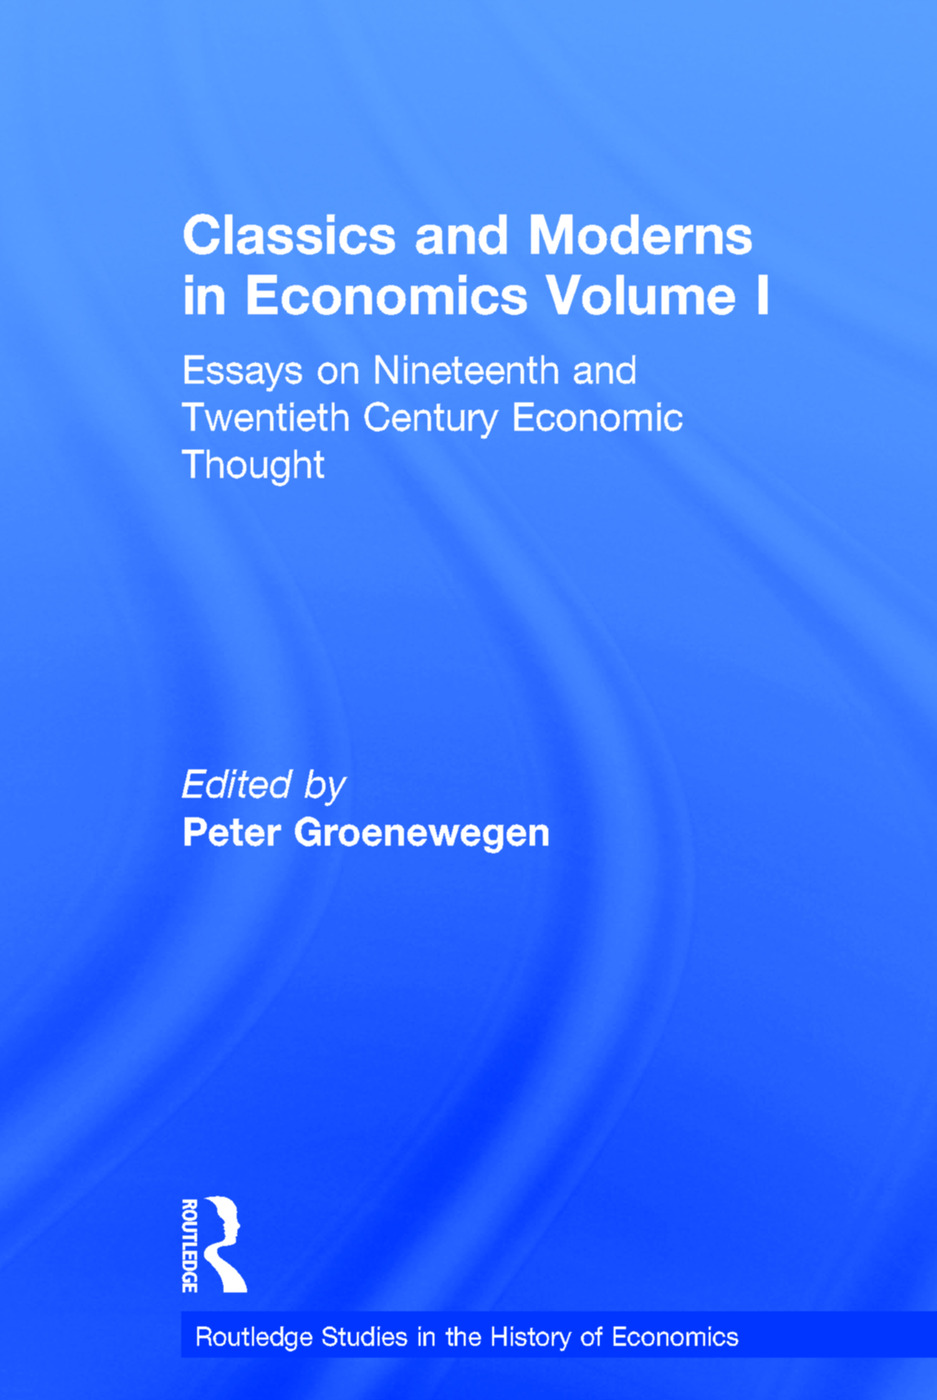 Classics and Moderns in Economics Volume I: Essays on Nineteenth and Twentieth Century Economic Thought book cover